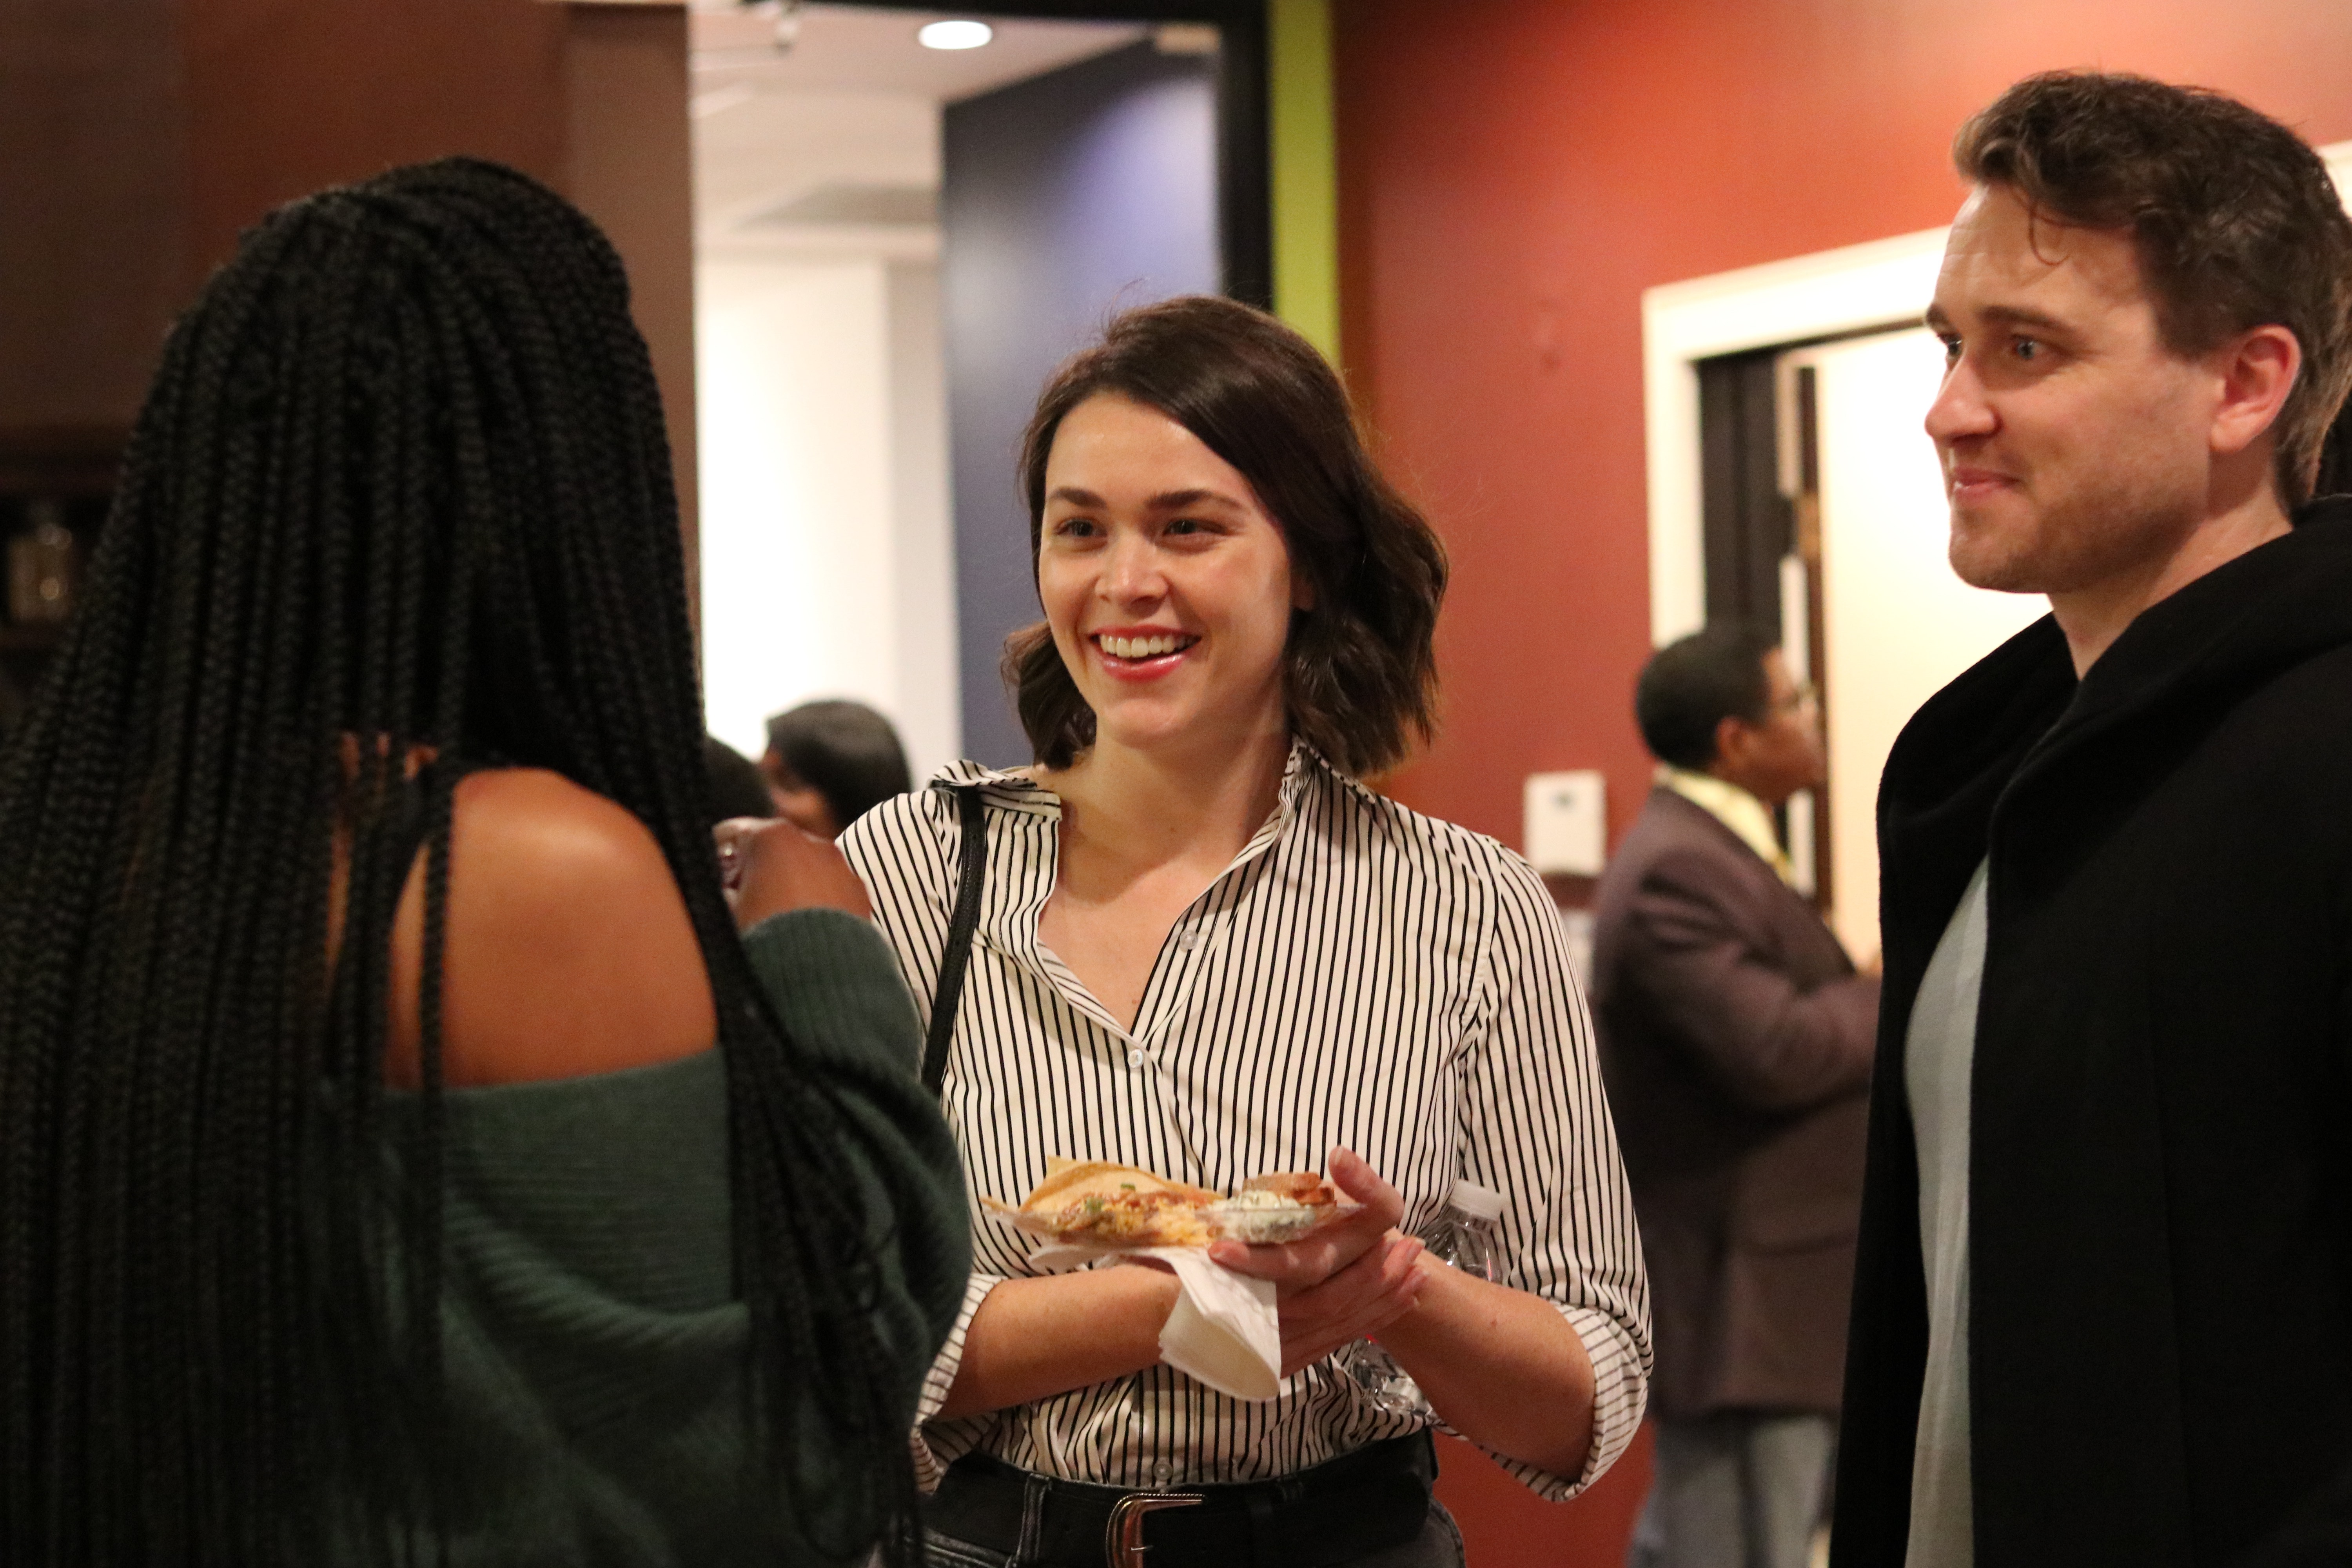 Three creatives/filmmakers talking at a DBFF filmmaker mixer. Two women ane one man are pictured.